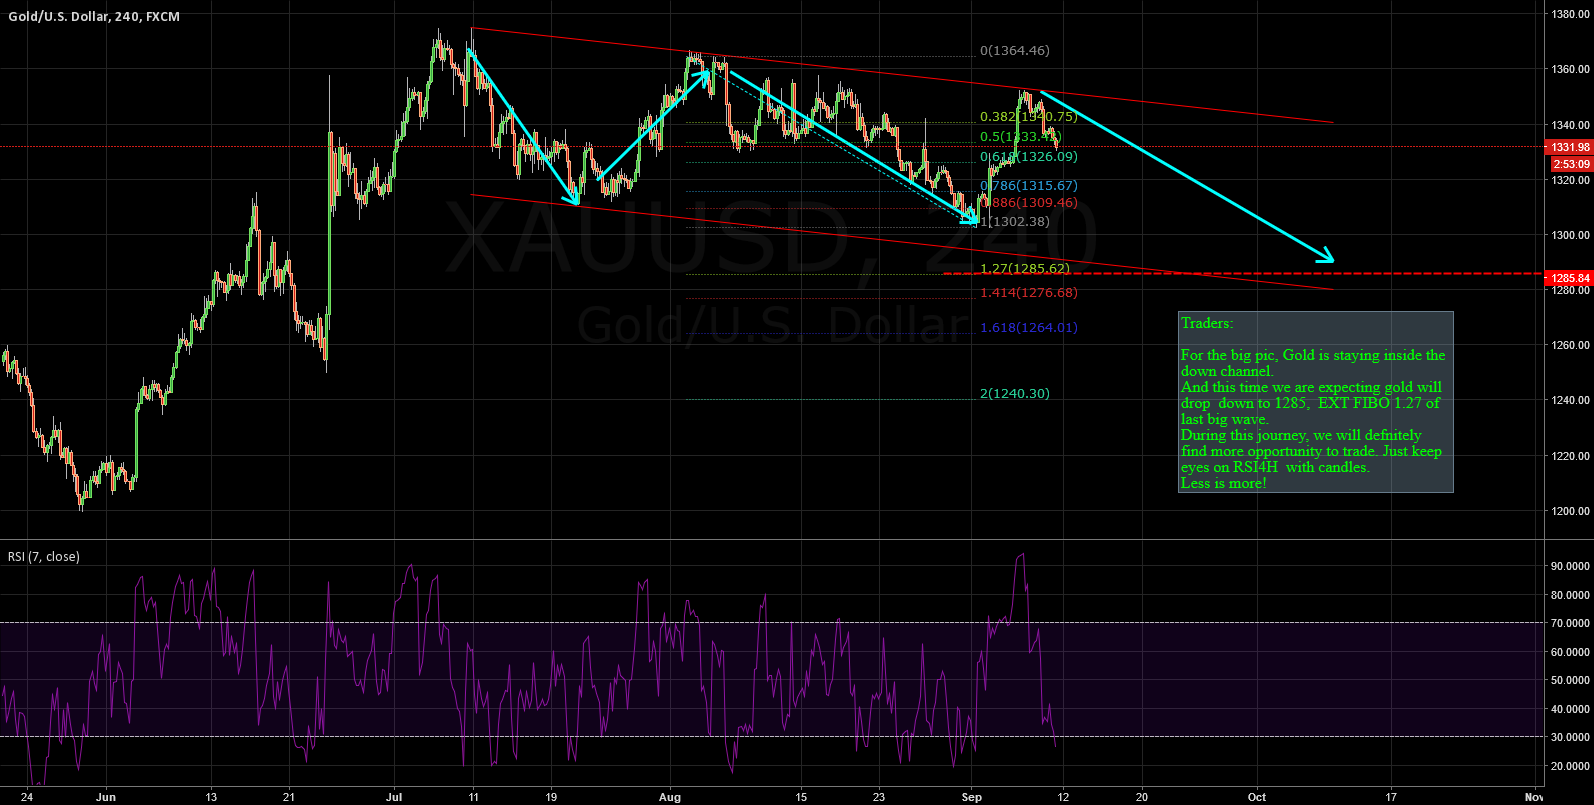 XAUUSD: MOVING INSIDE THE CHANNEL